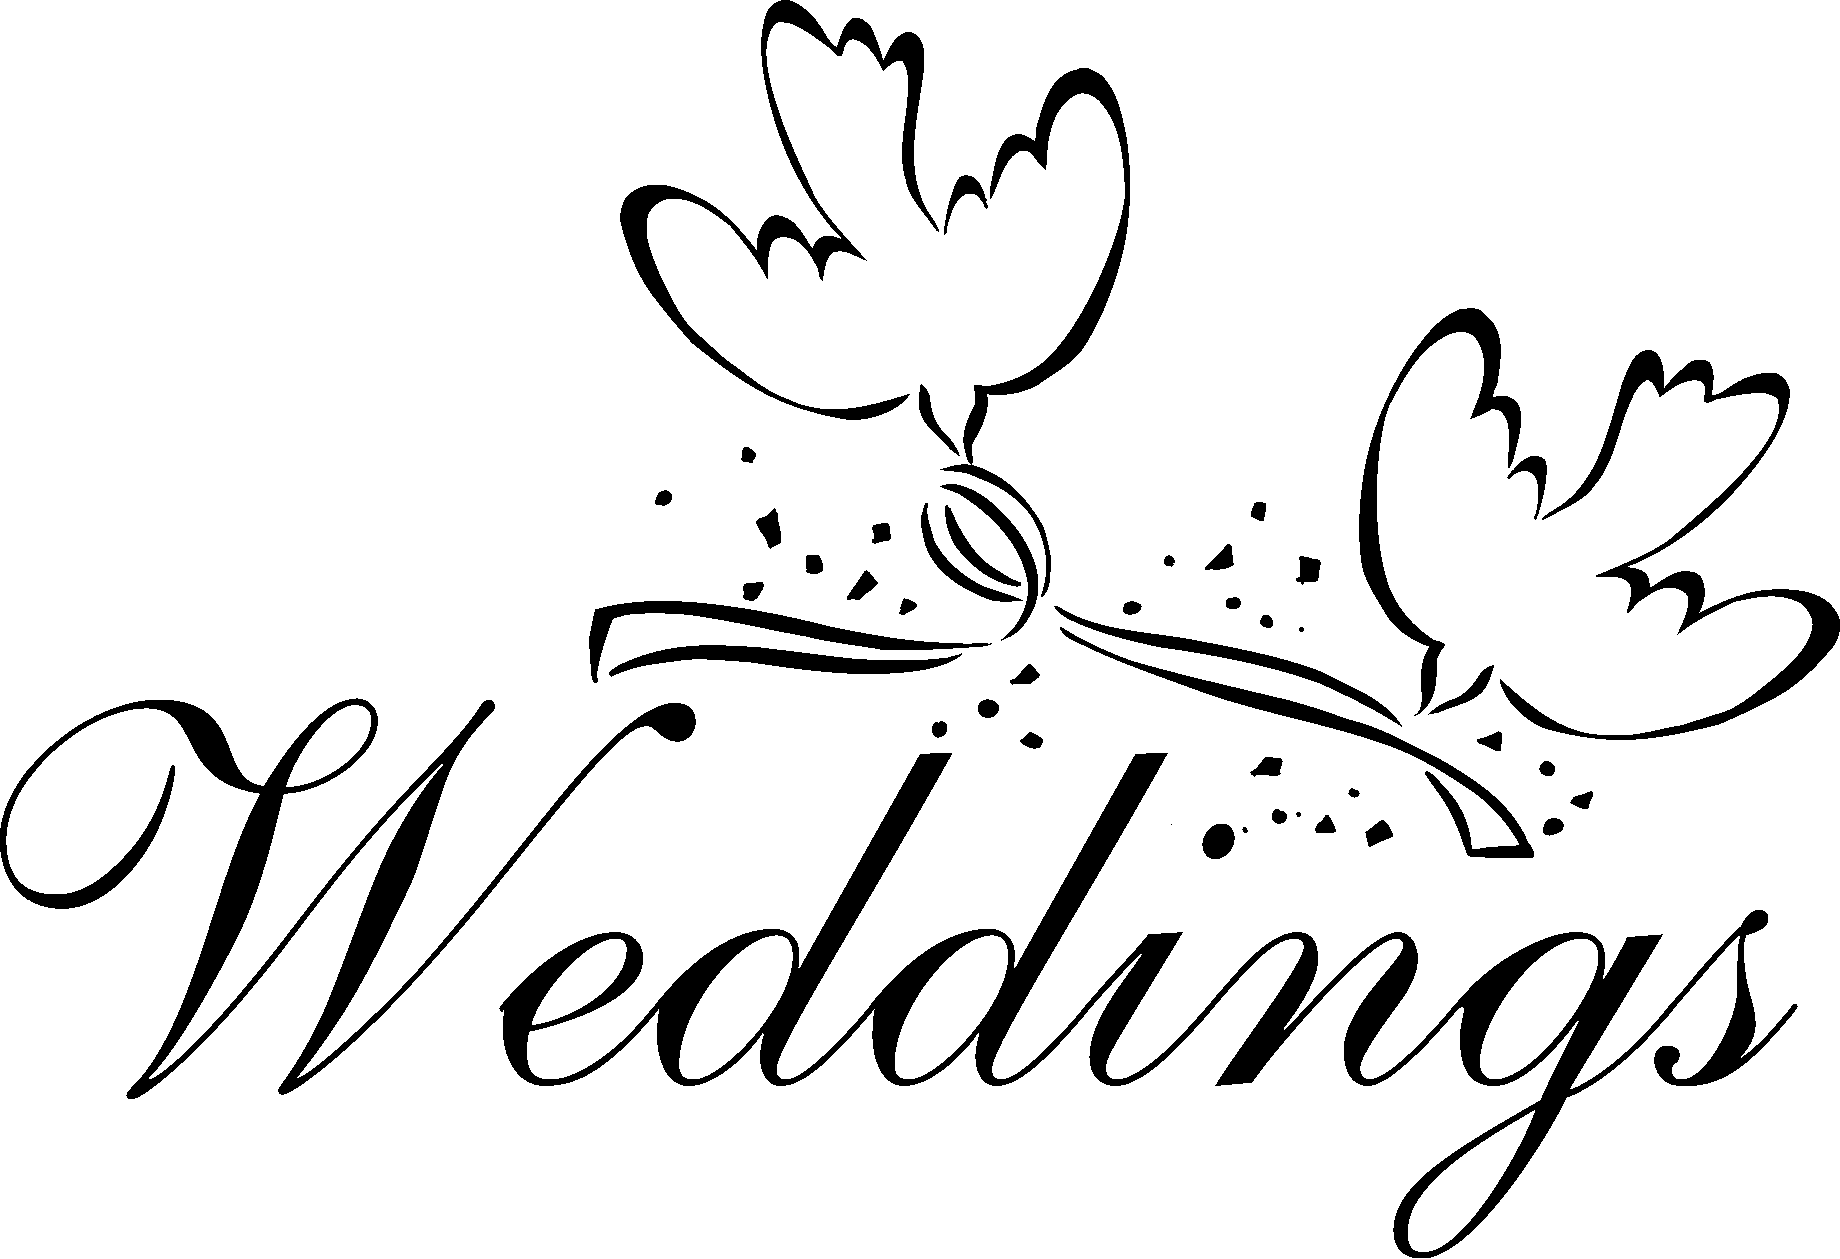 Weddings Png - Wedding Dove PNG HD Transparent Wedding Dove HD.PNG Images. | PlusPNG